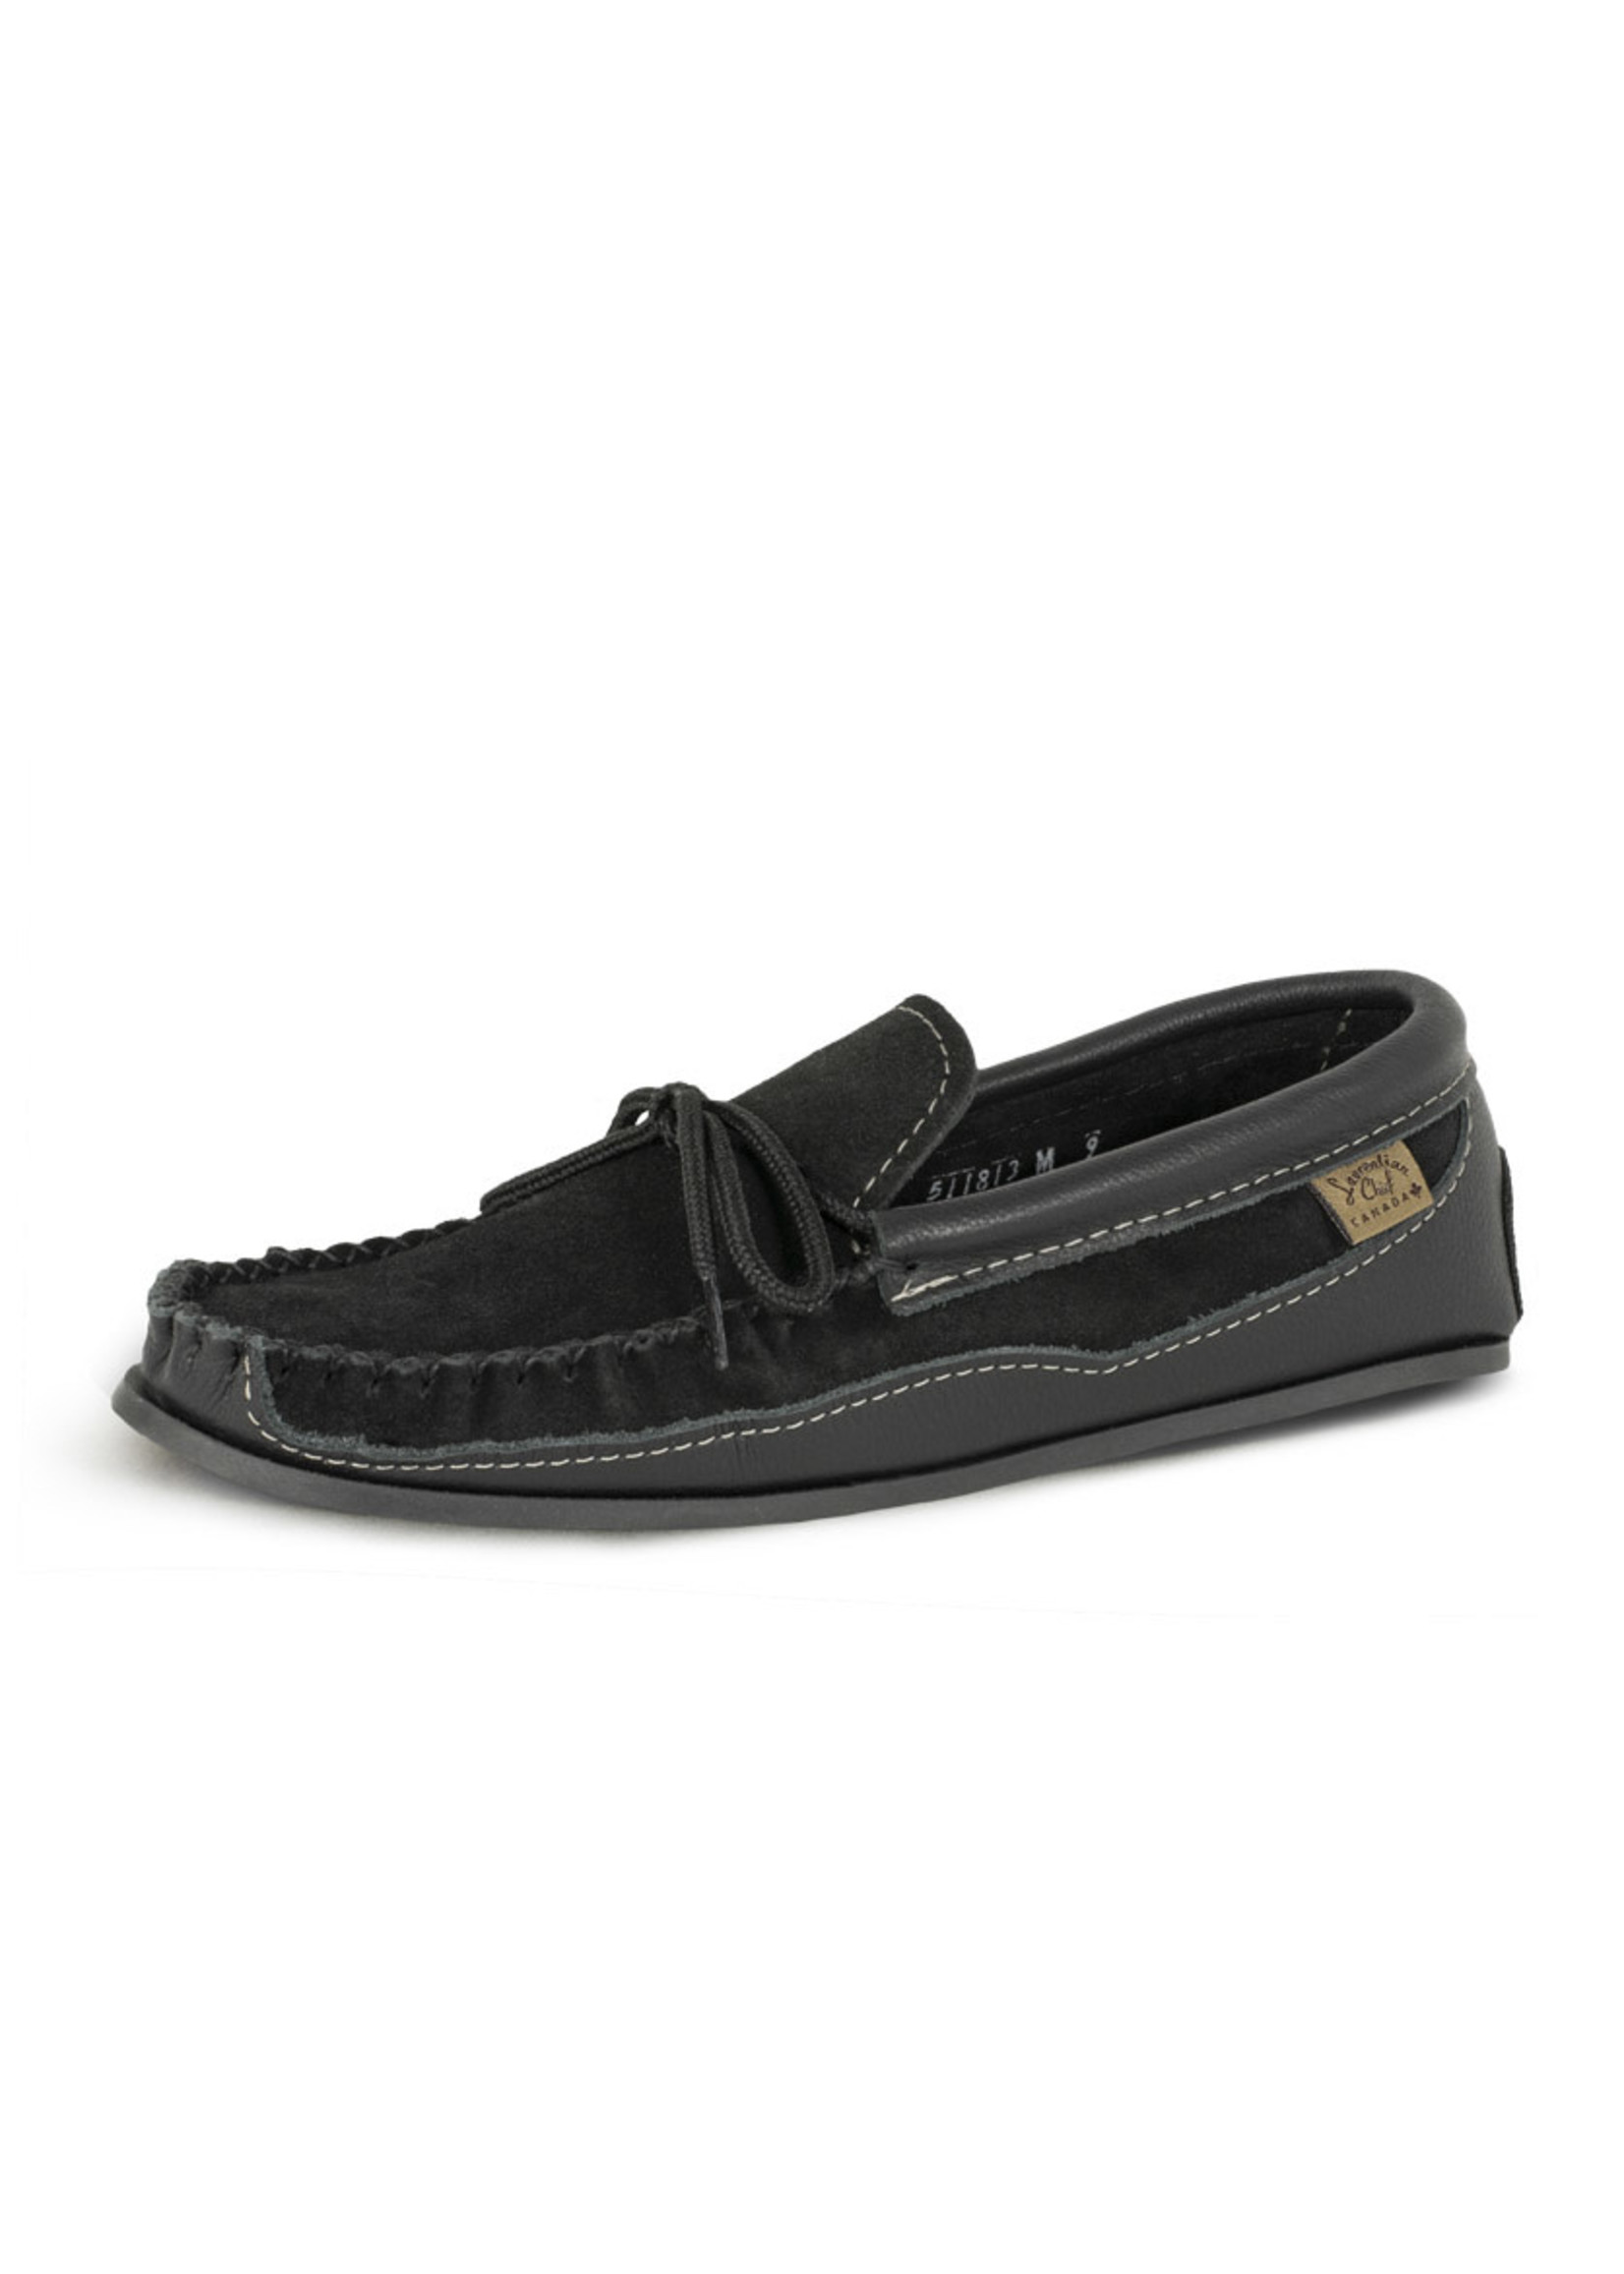 LAURENTIAN CHIEF SUEDE/LEATHER MOCCASINS 511813M